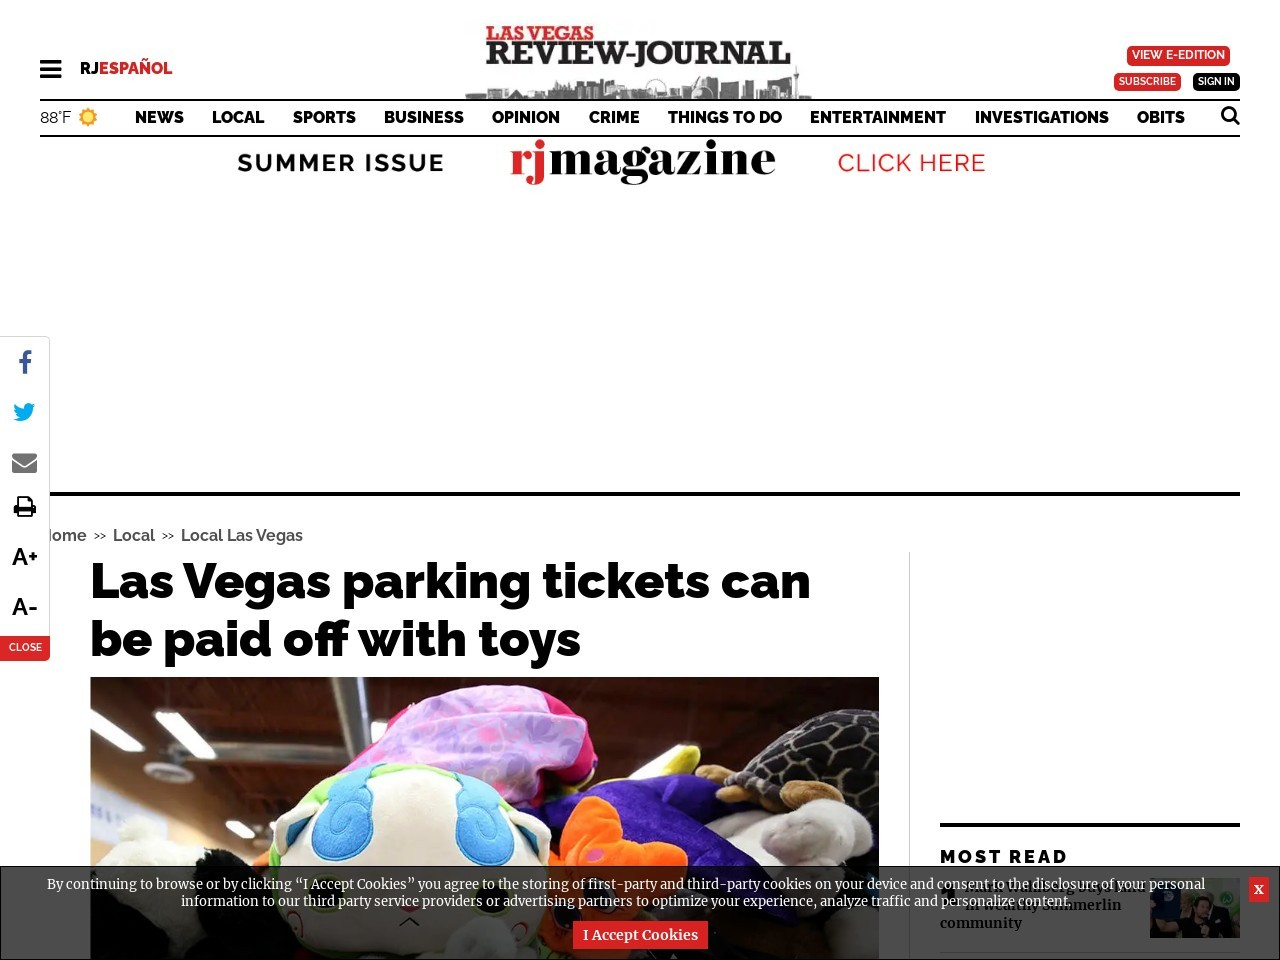 Las Vegas parking tickets can be paid off with toys